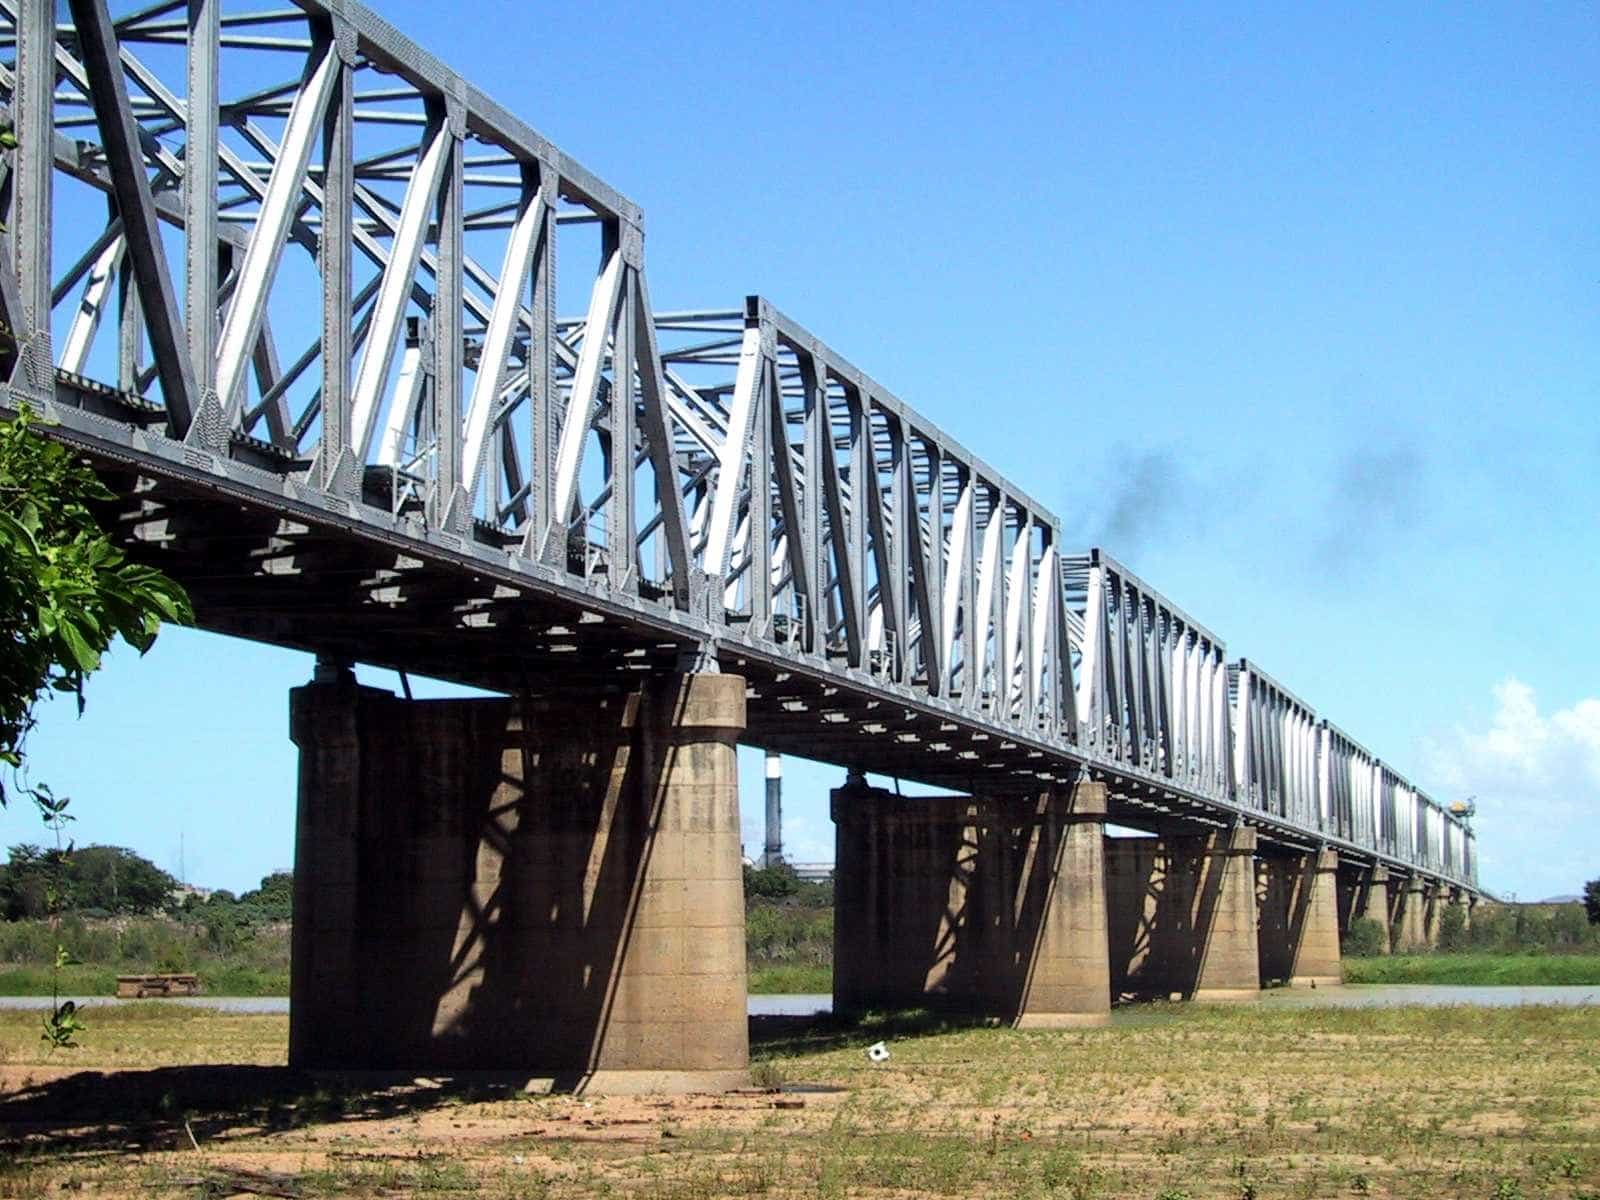 Under Burdekin Bridge